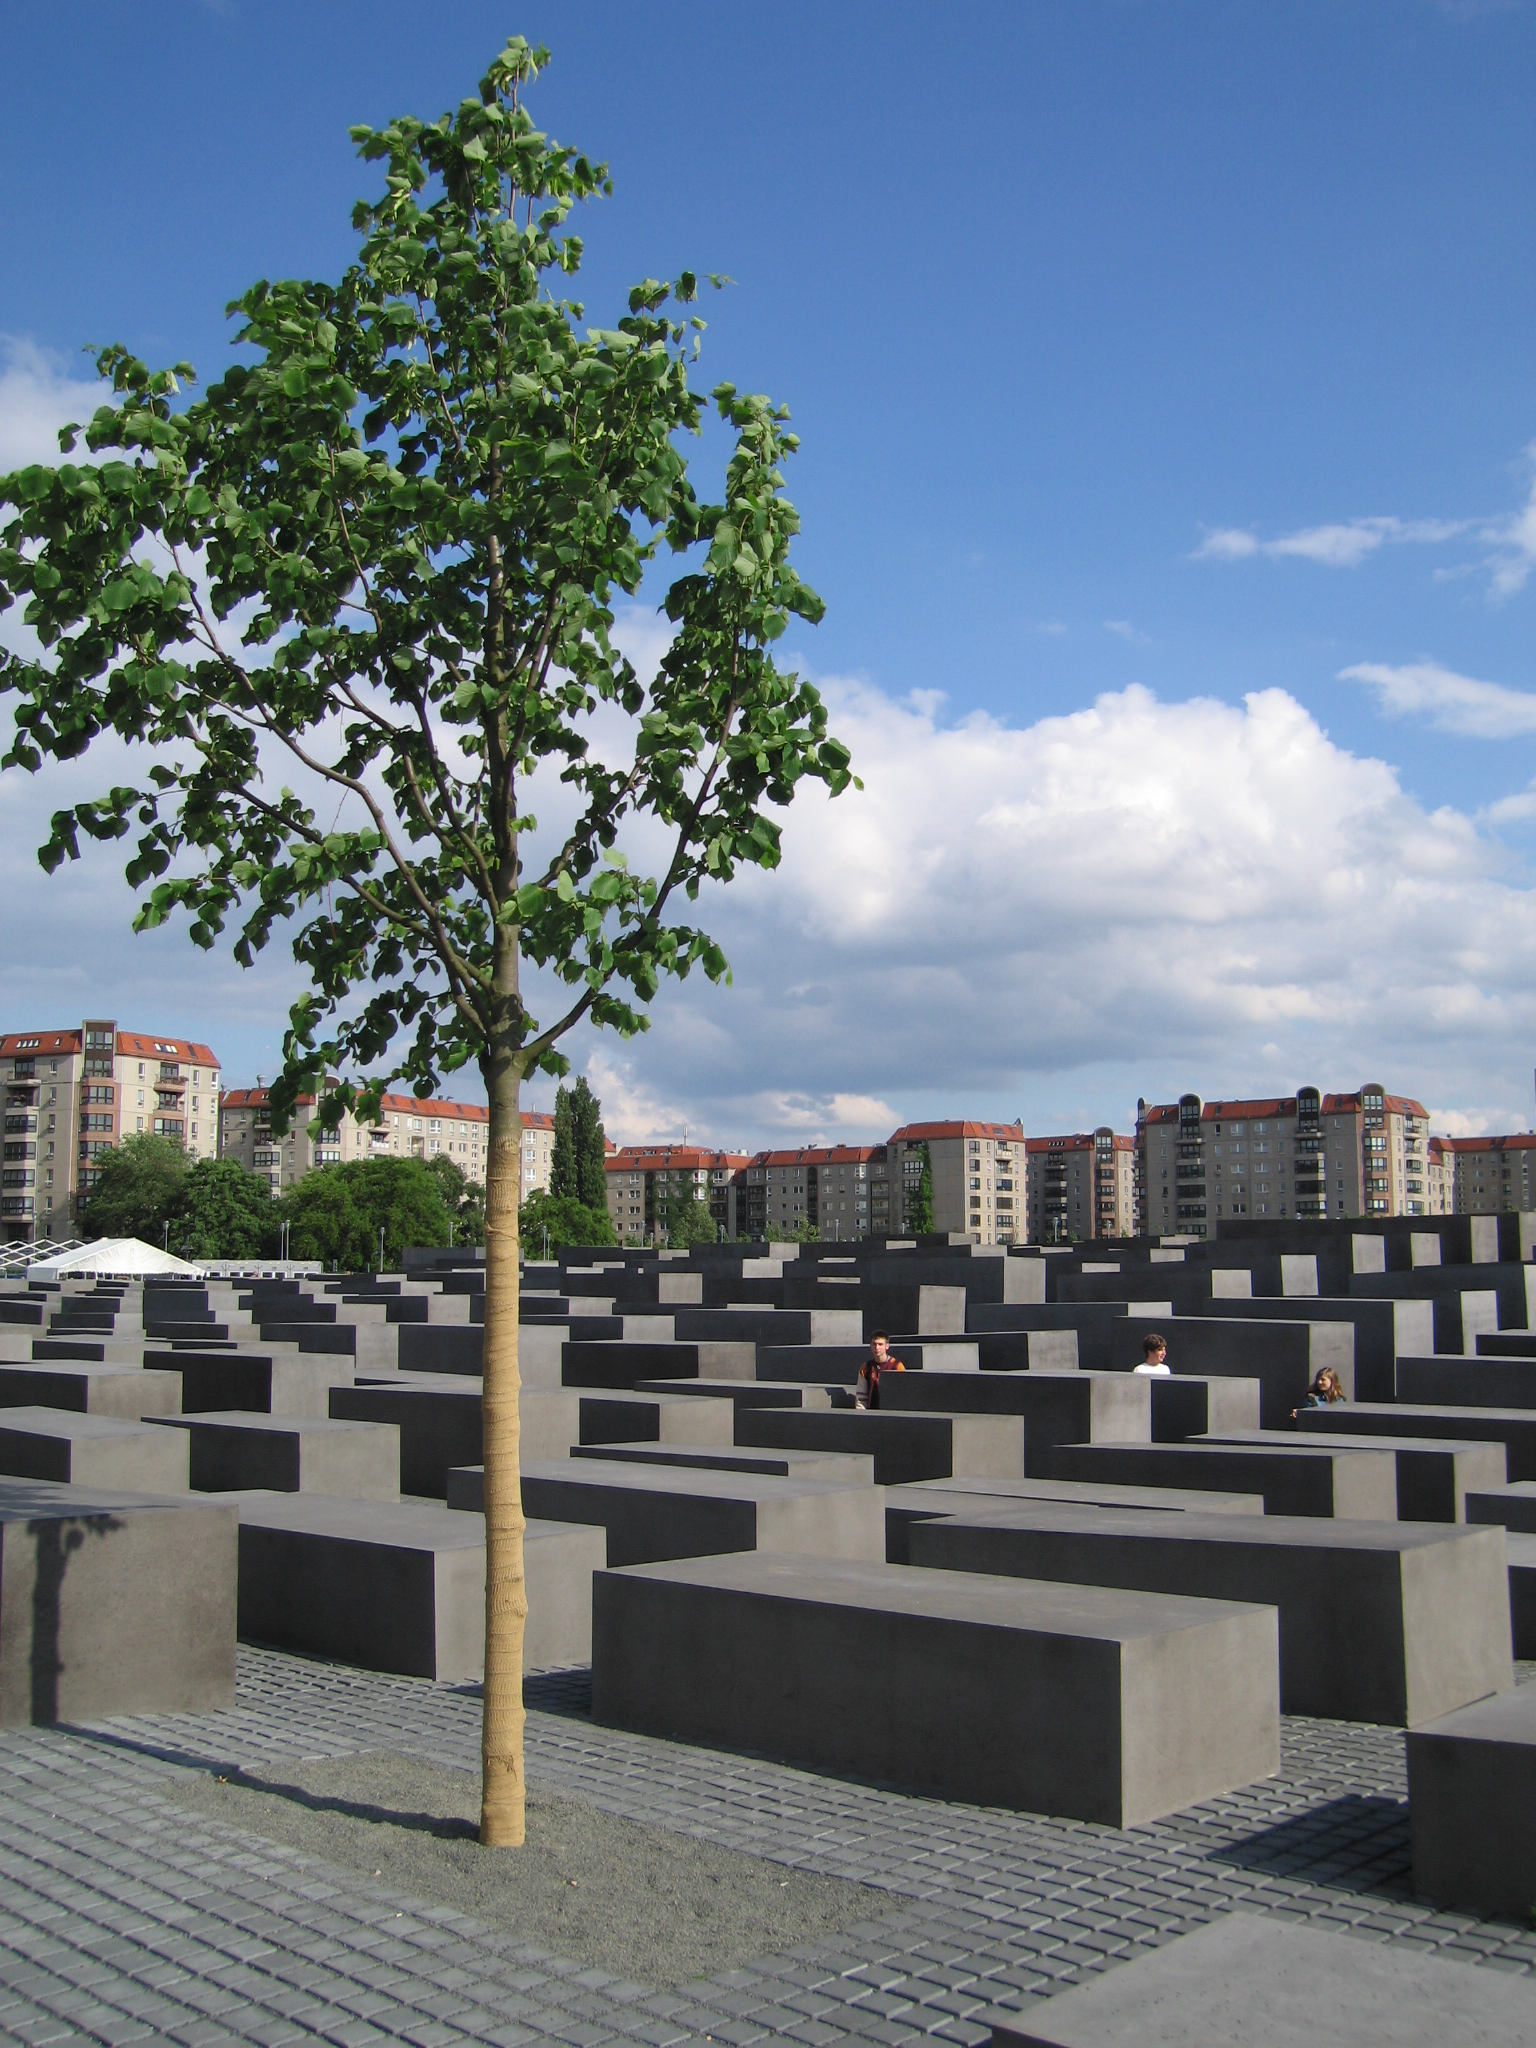 15 Works of Peter Eisenman Every Architect should visit - Memorial to the Murdered Jews of Europe, Germany